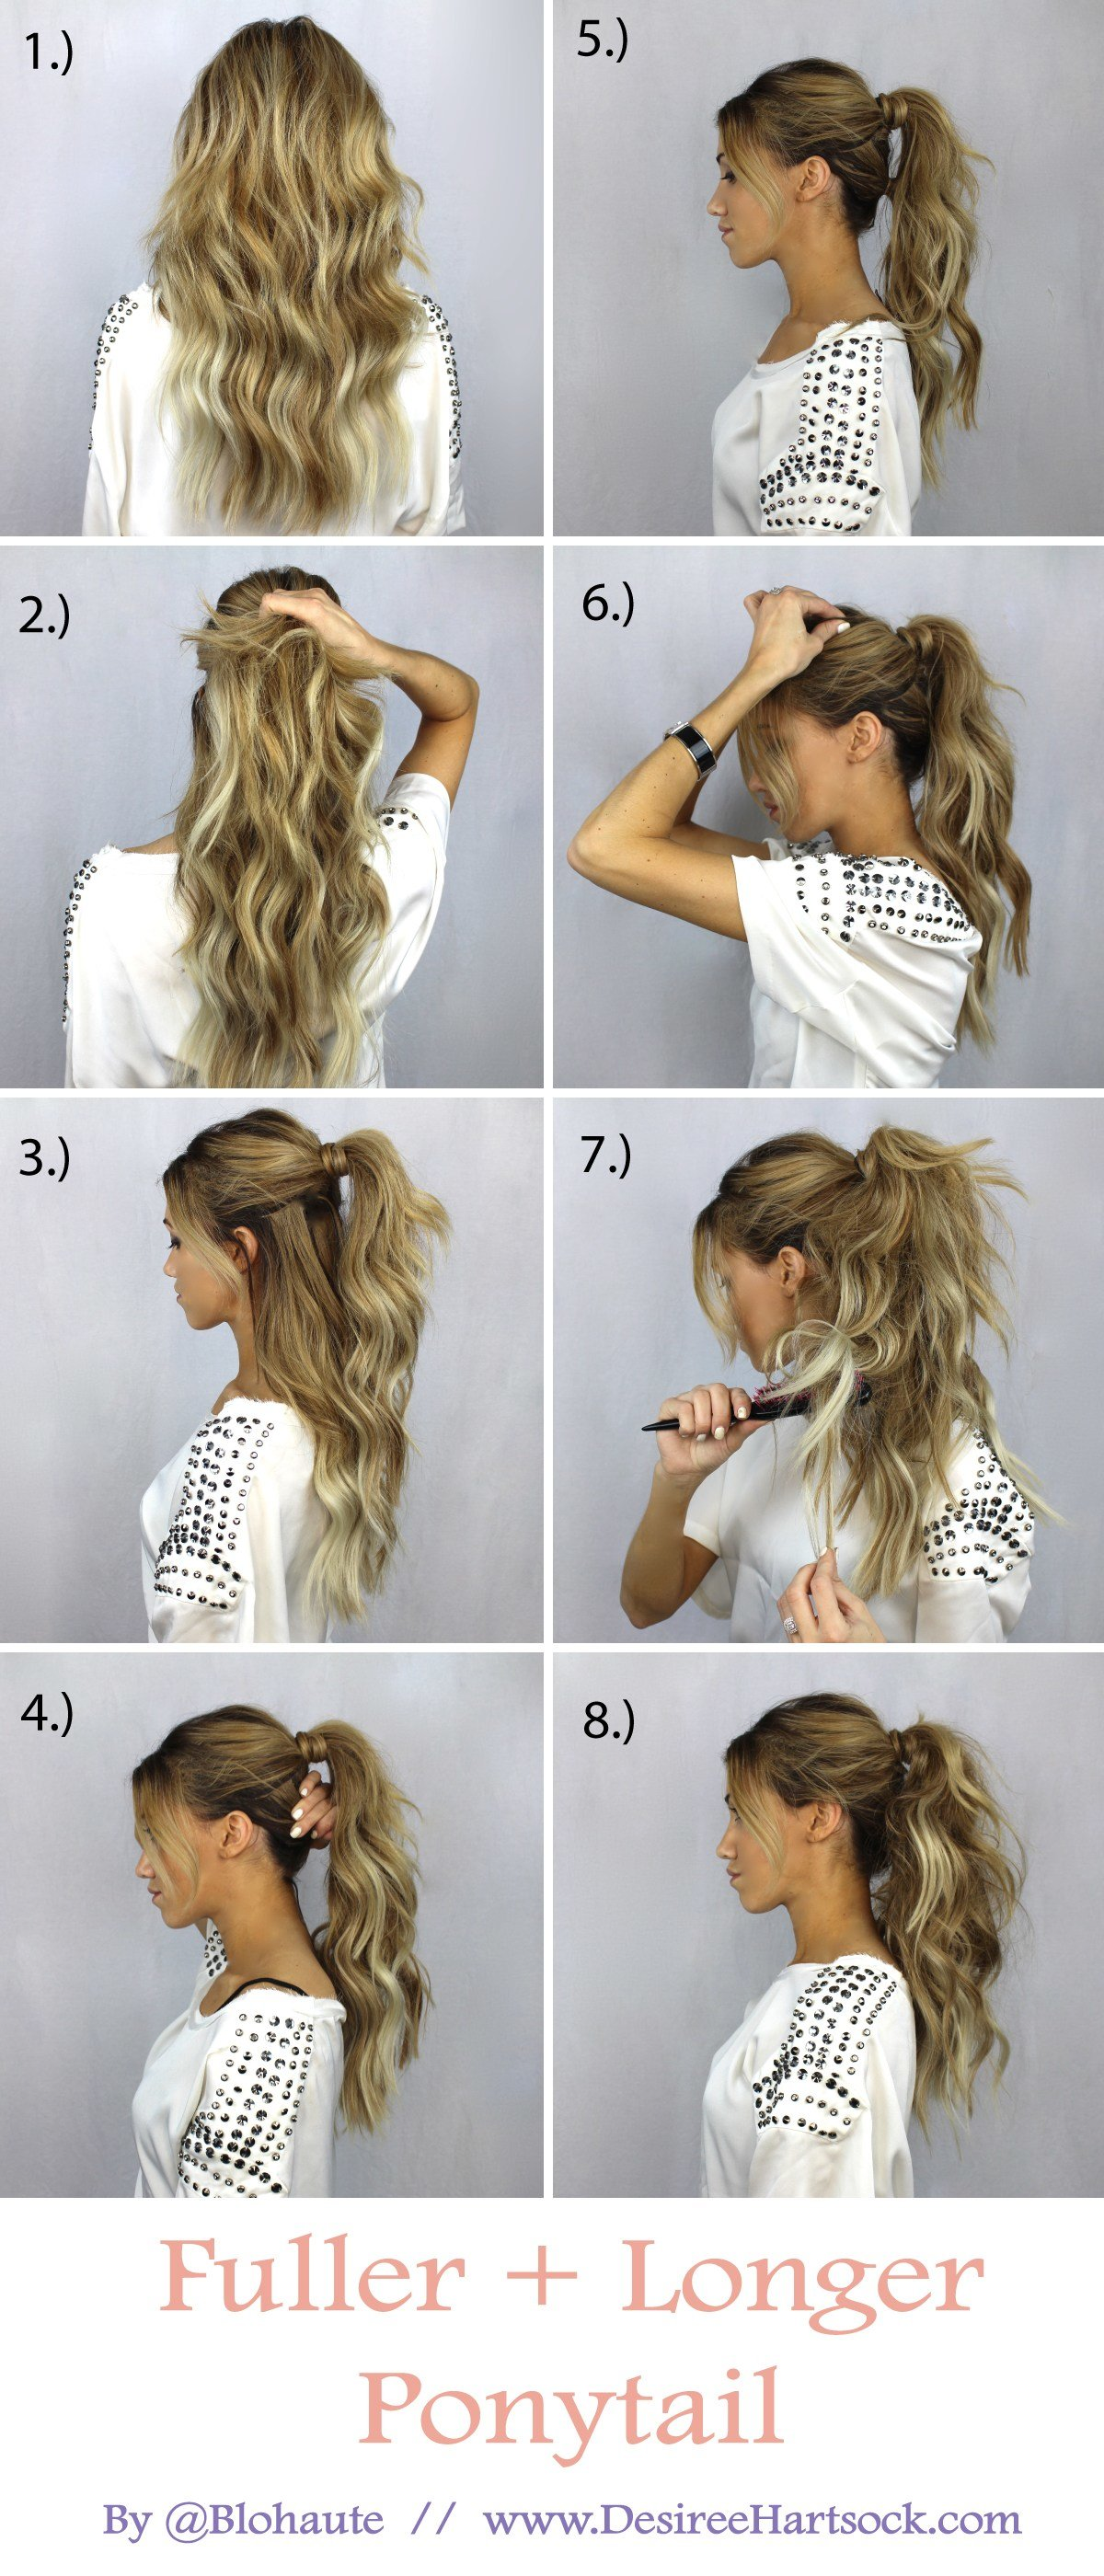 The Best Create A Fuller And Longer Ponytail In These Easy Steps Pictures